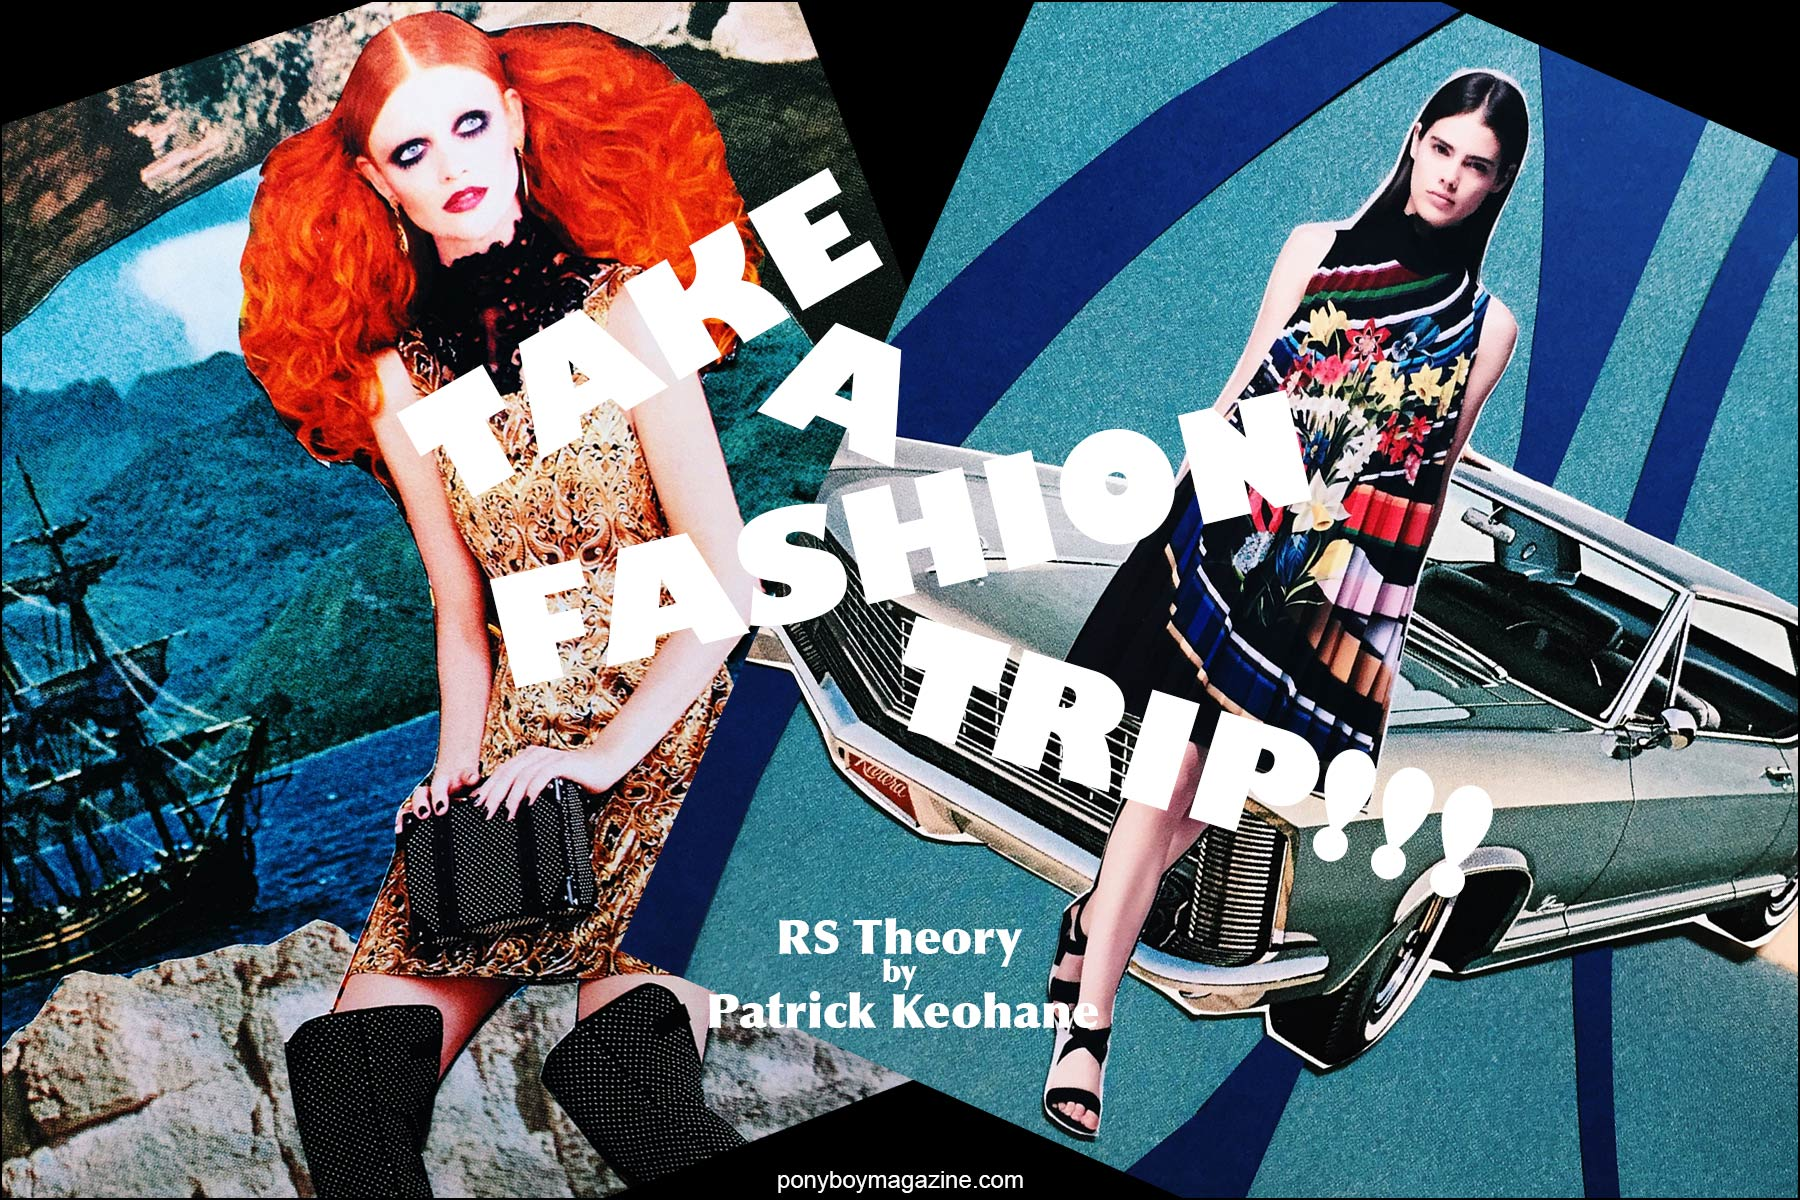 Collage artwork of Alice & Olivia by Patrick Keohane for RS Theory. Ponyboy magazine.